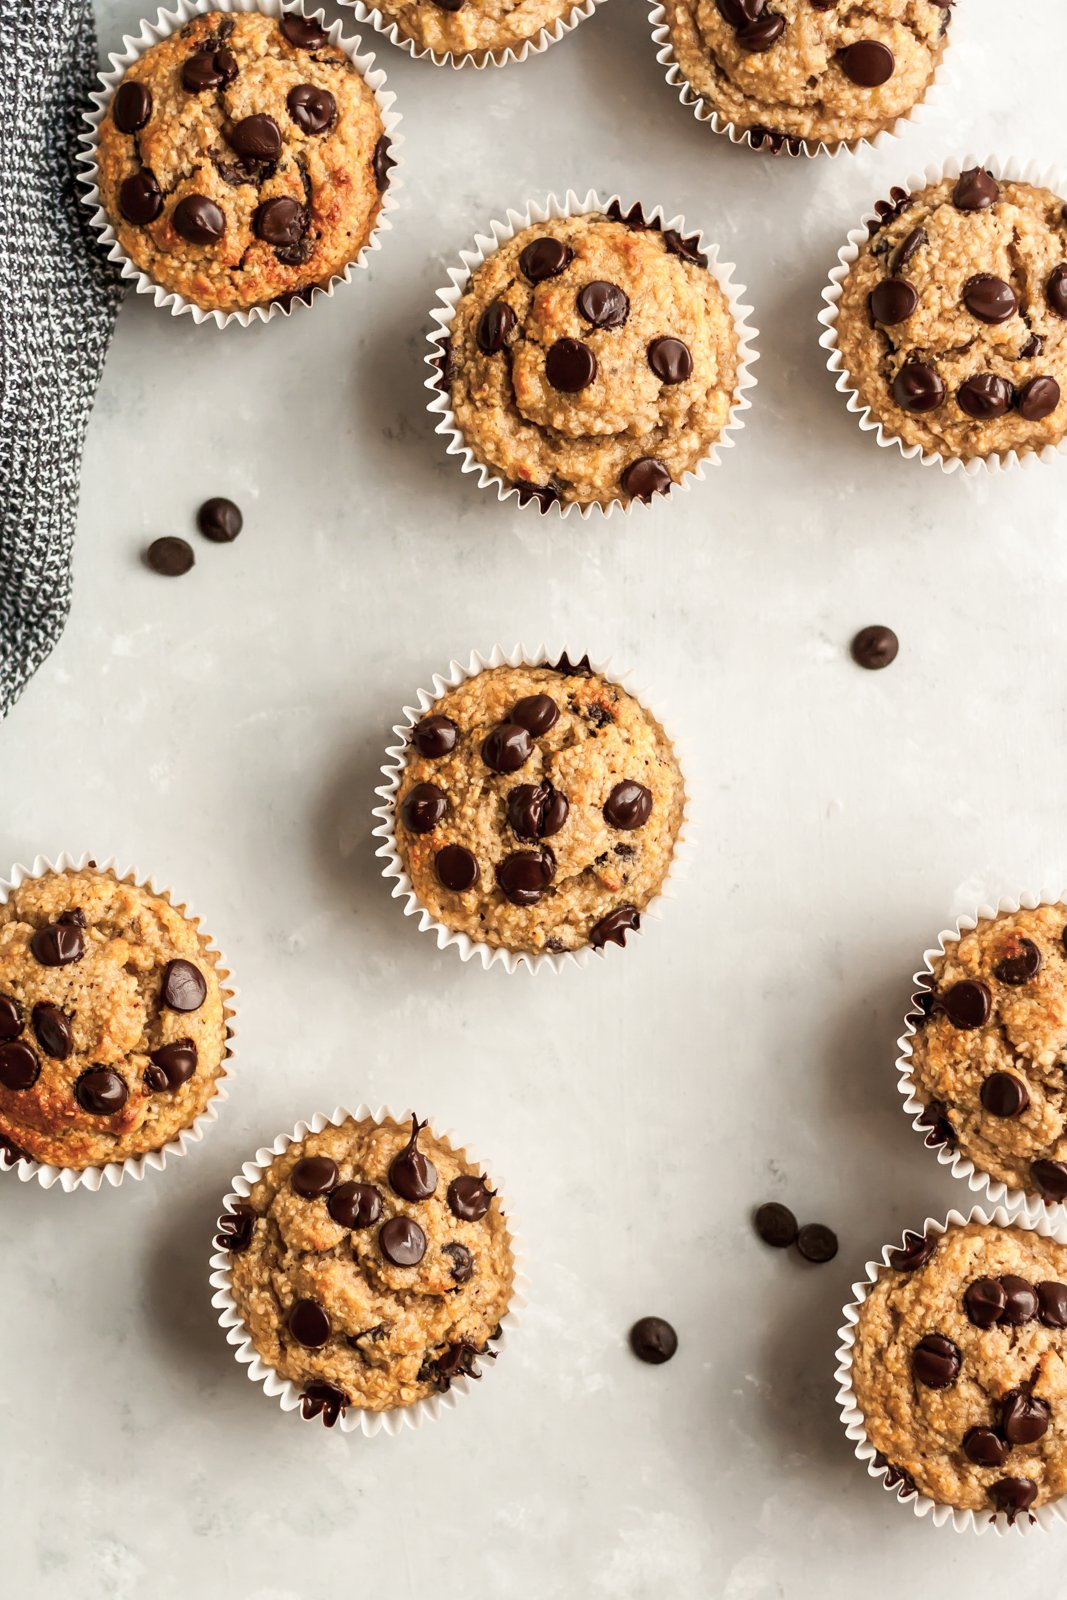 gluten free banana chocolate chip muffins on a grey board